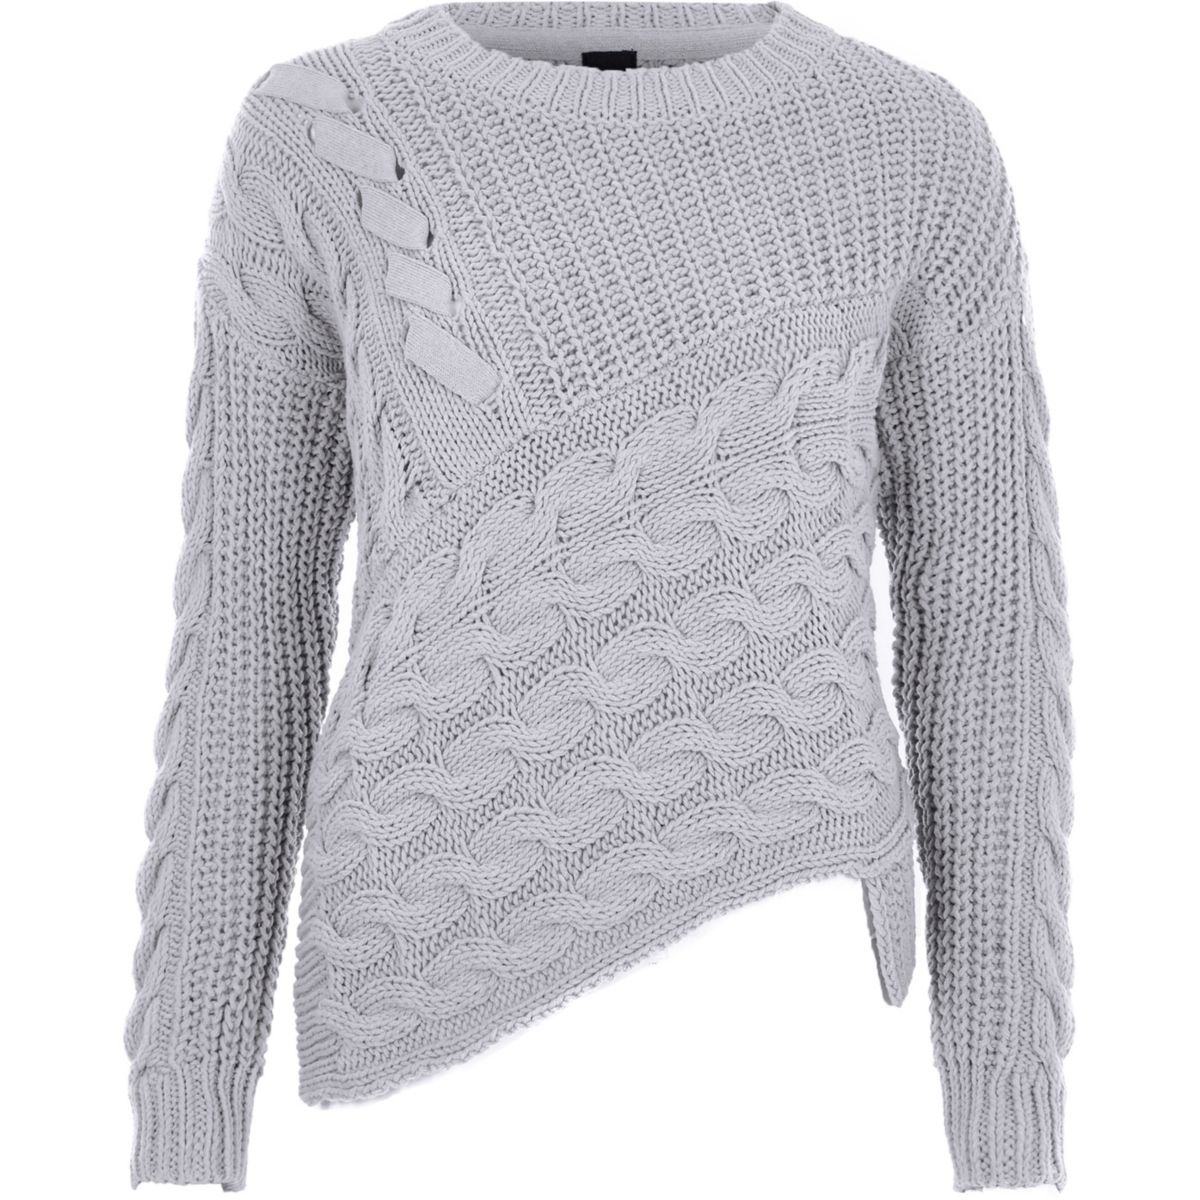 Grey cable knit asymmetric jumper